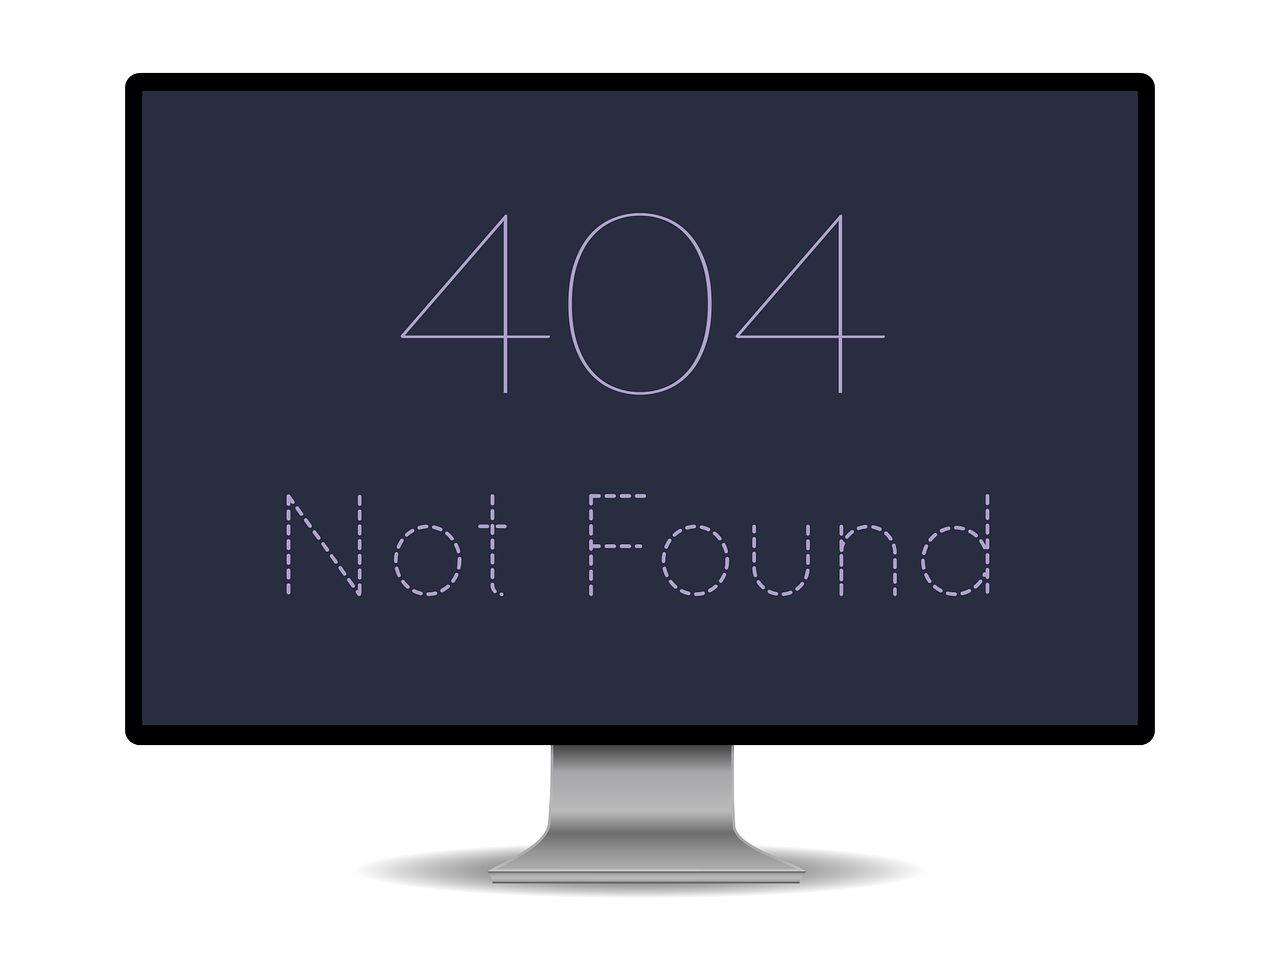 Get More Out Of Your 404 Pages